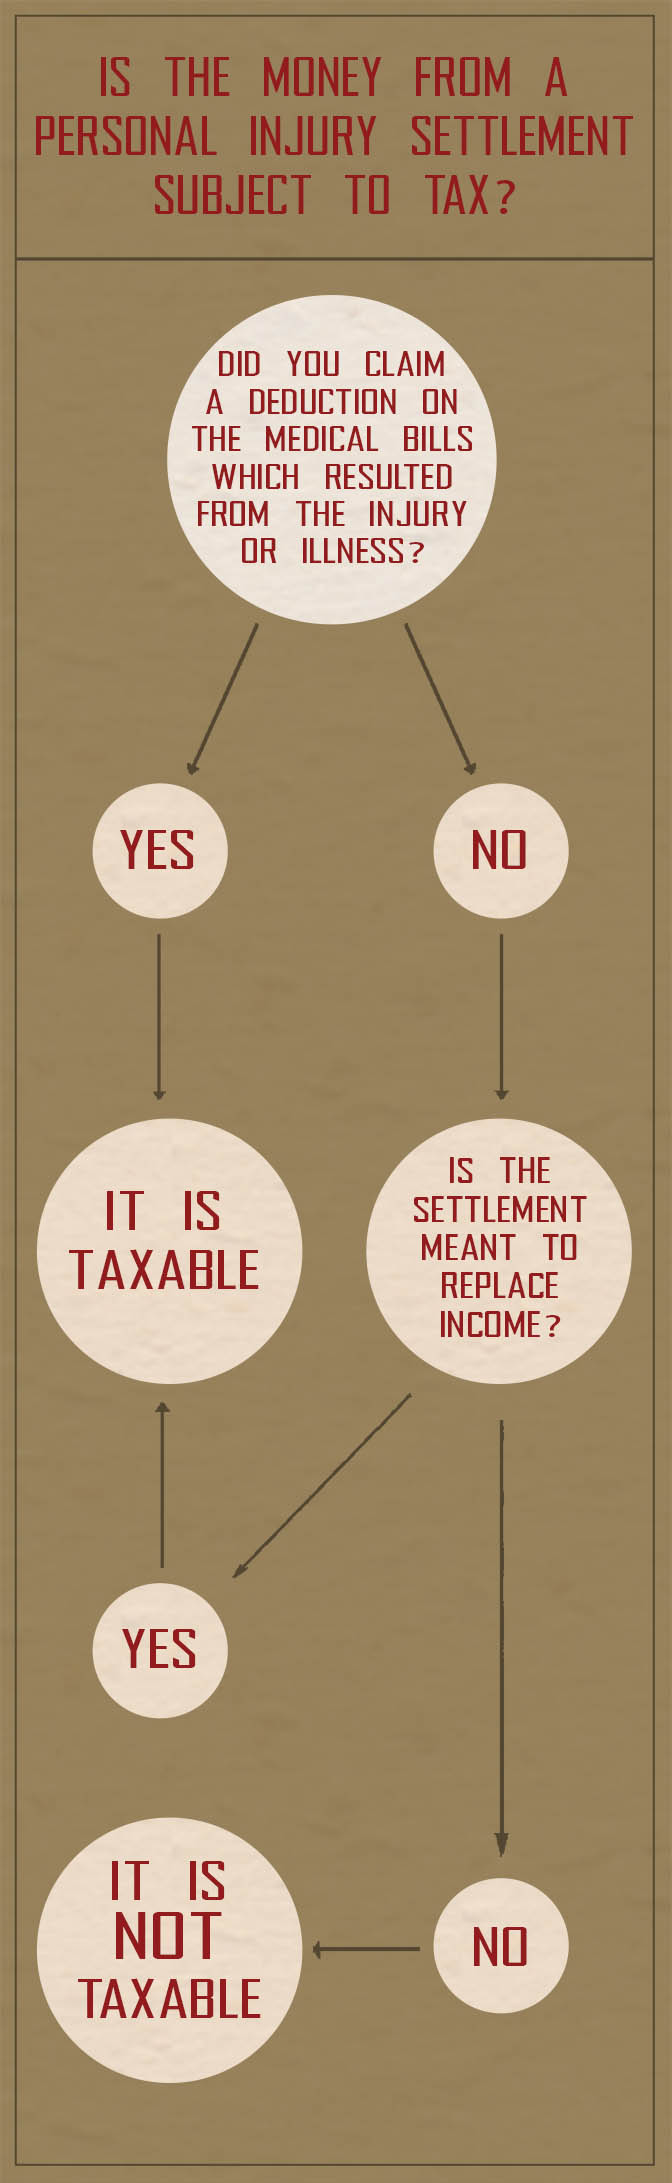 personal-injury-settlements-taxable (2)